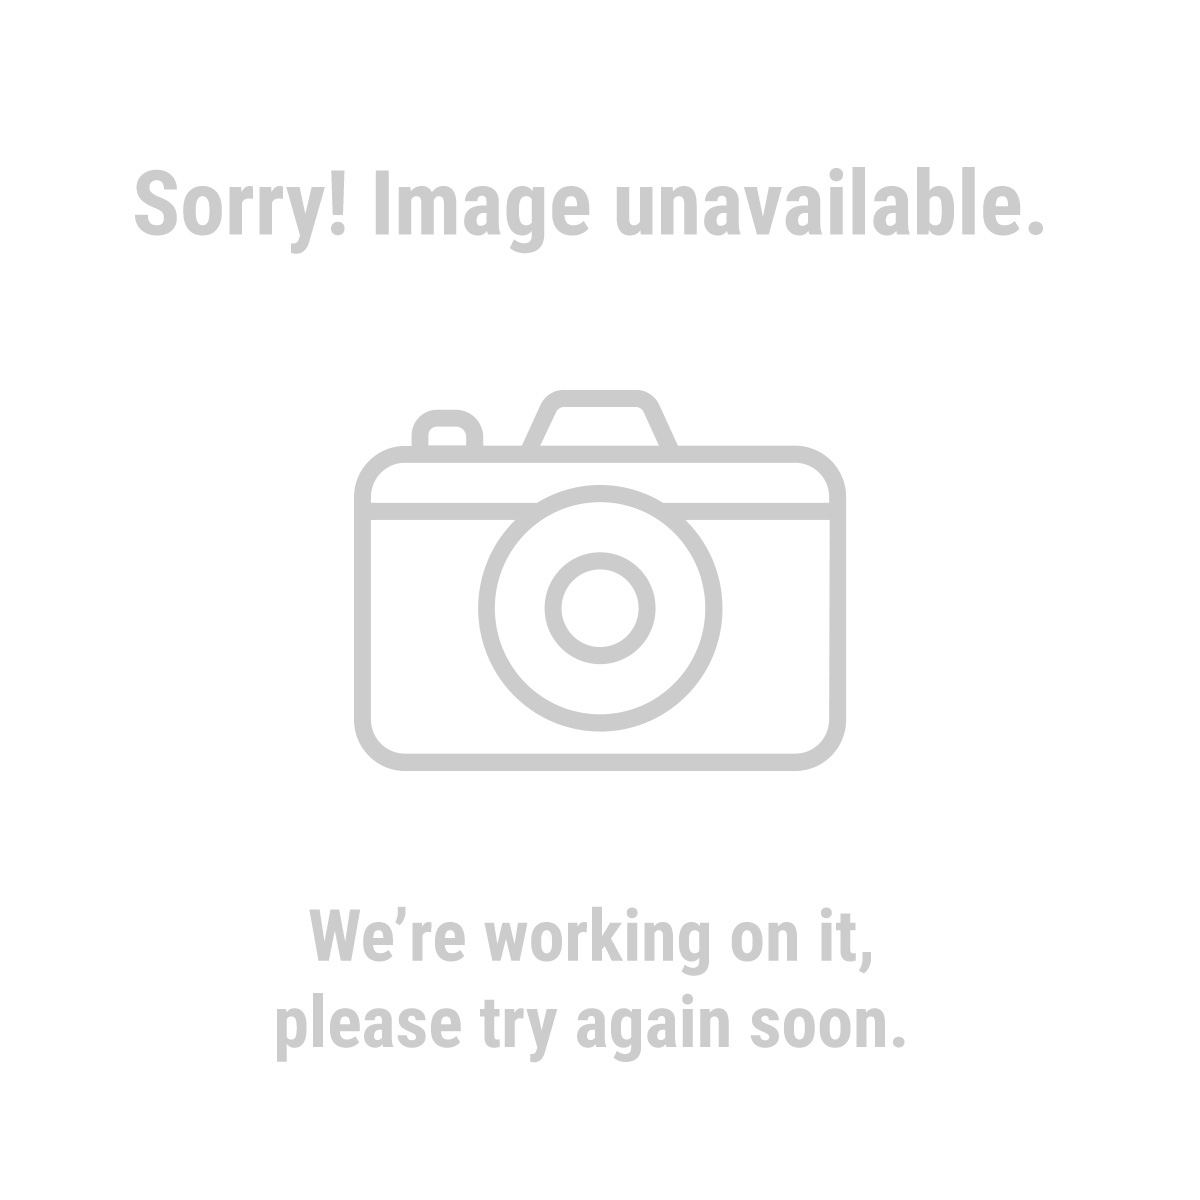 "Haul-Master 92470 5.3"" x 12"" 6 Ply Tire with 5 Lug Rim"